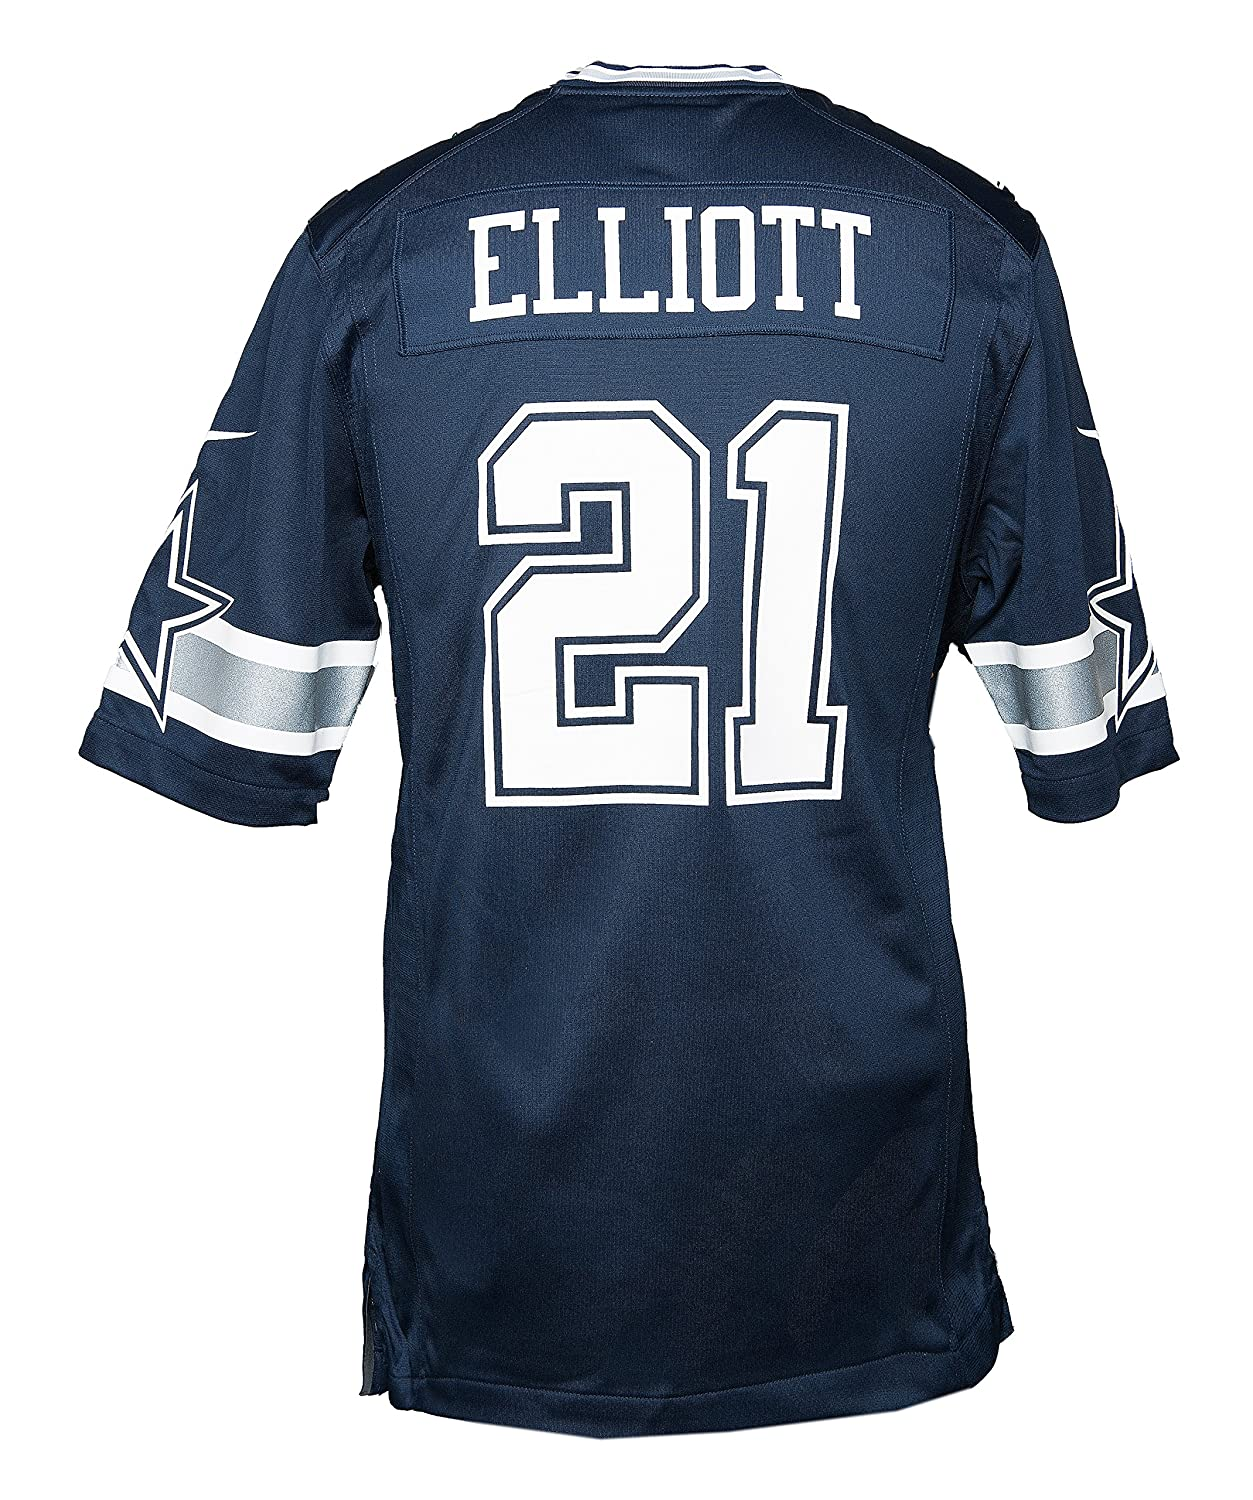 9860464f374 Amazon.com : Dallas Cowboys Ezekiel Elliott Nike Navy Game Replica Jersey :  Clothing